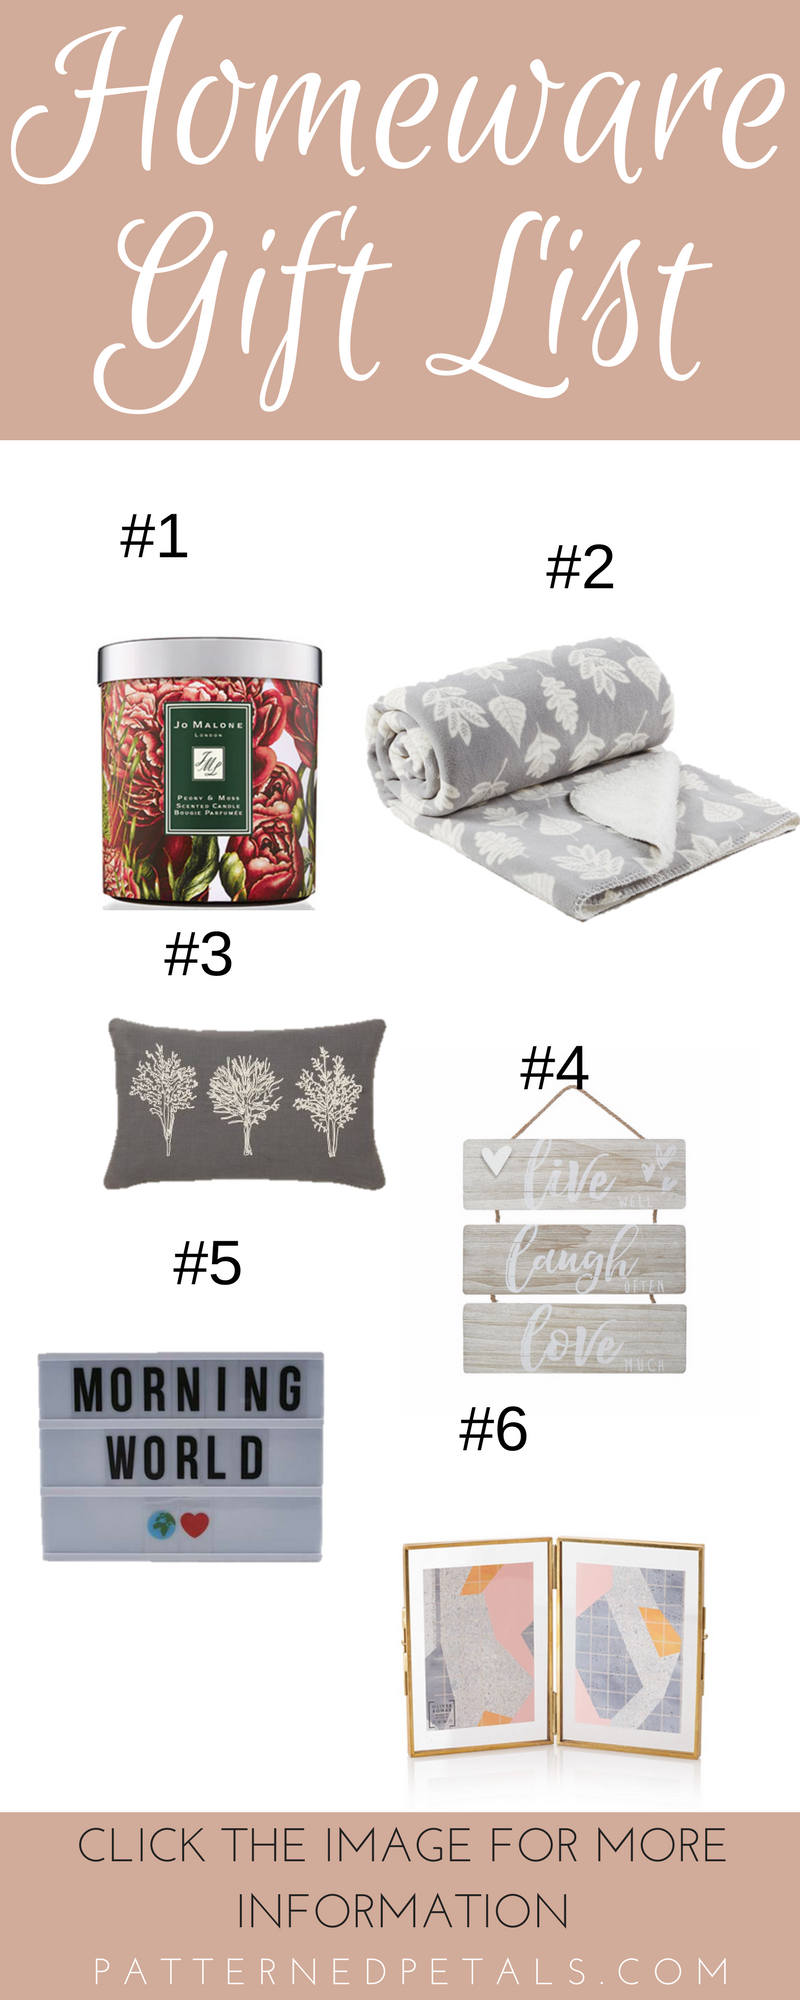 homeware gift list